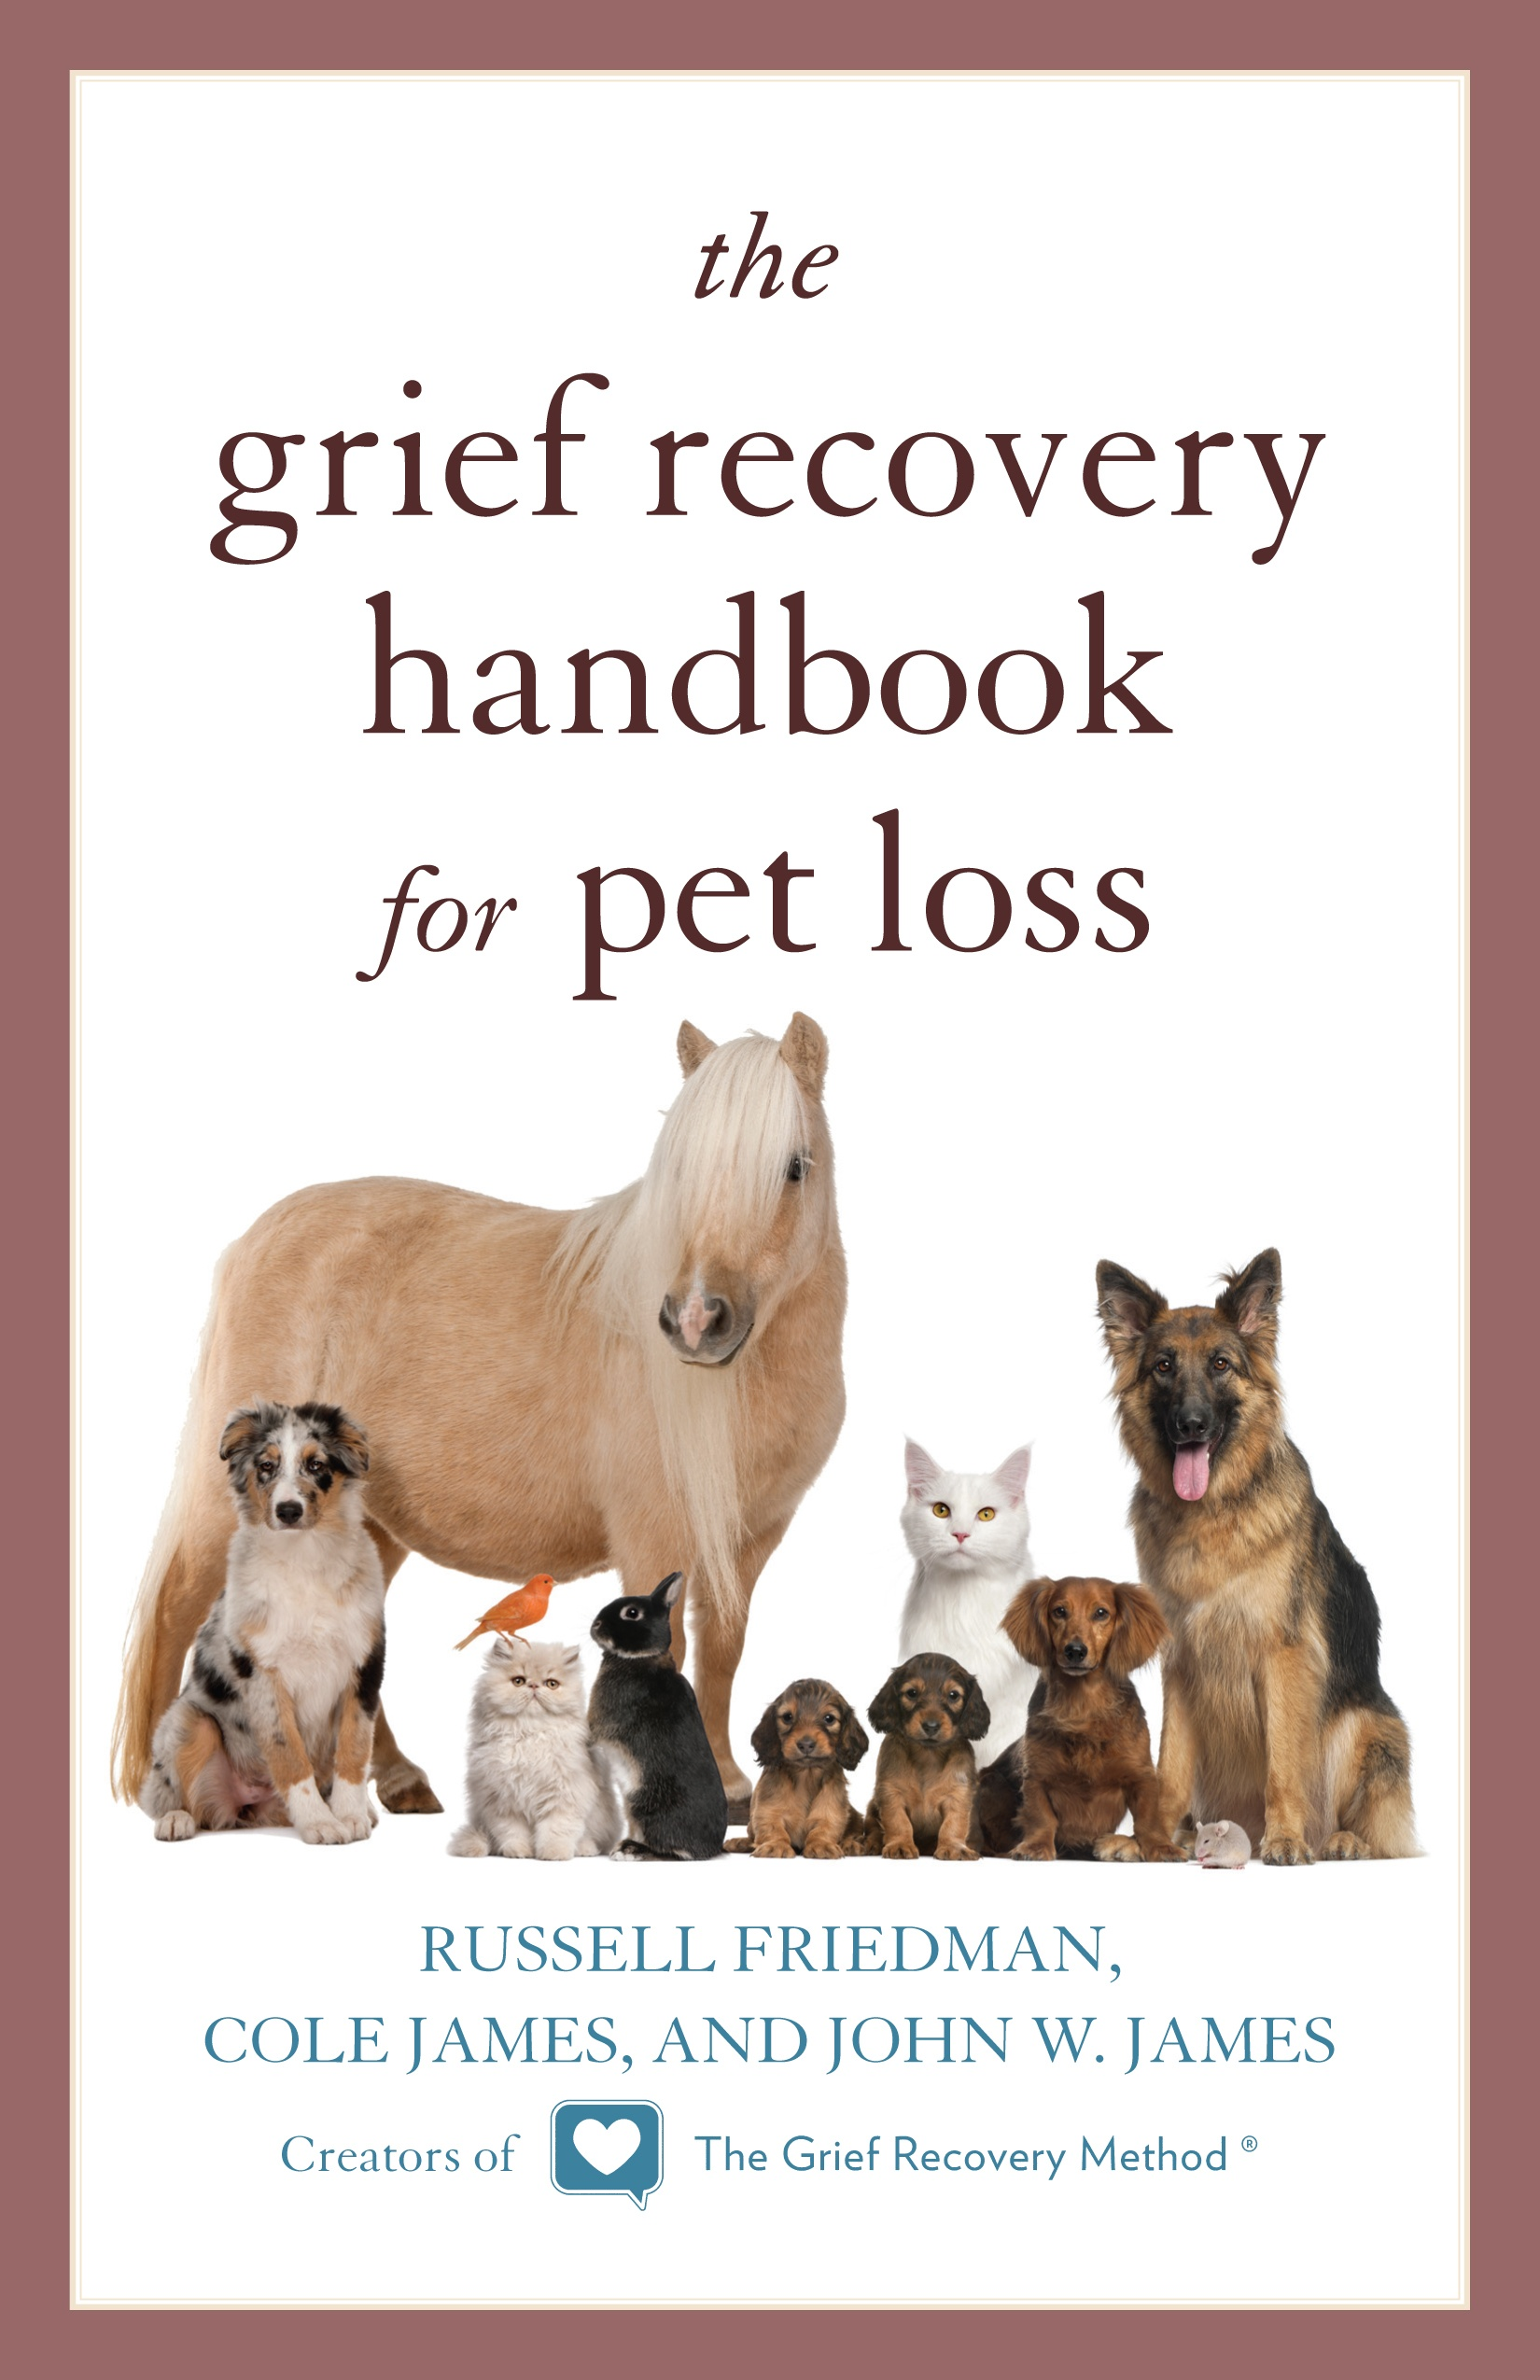 Grief Recovery Handbook for Pet Loss.jpg